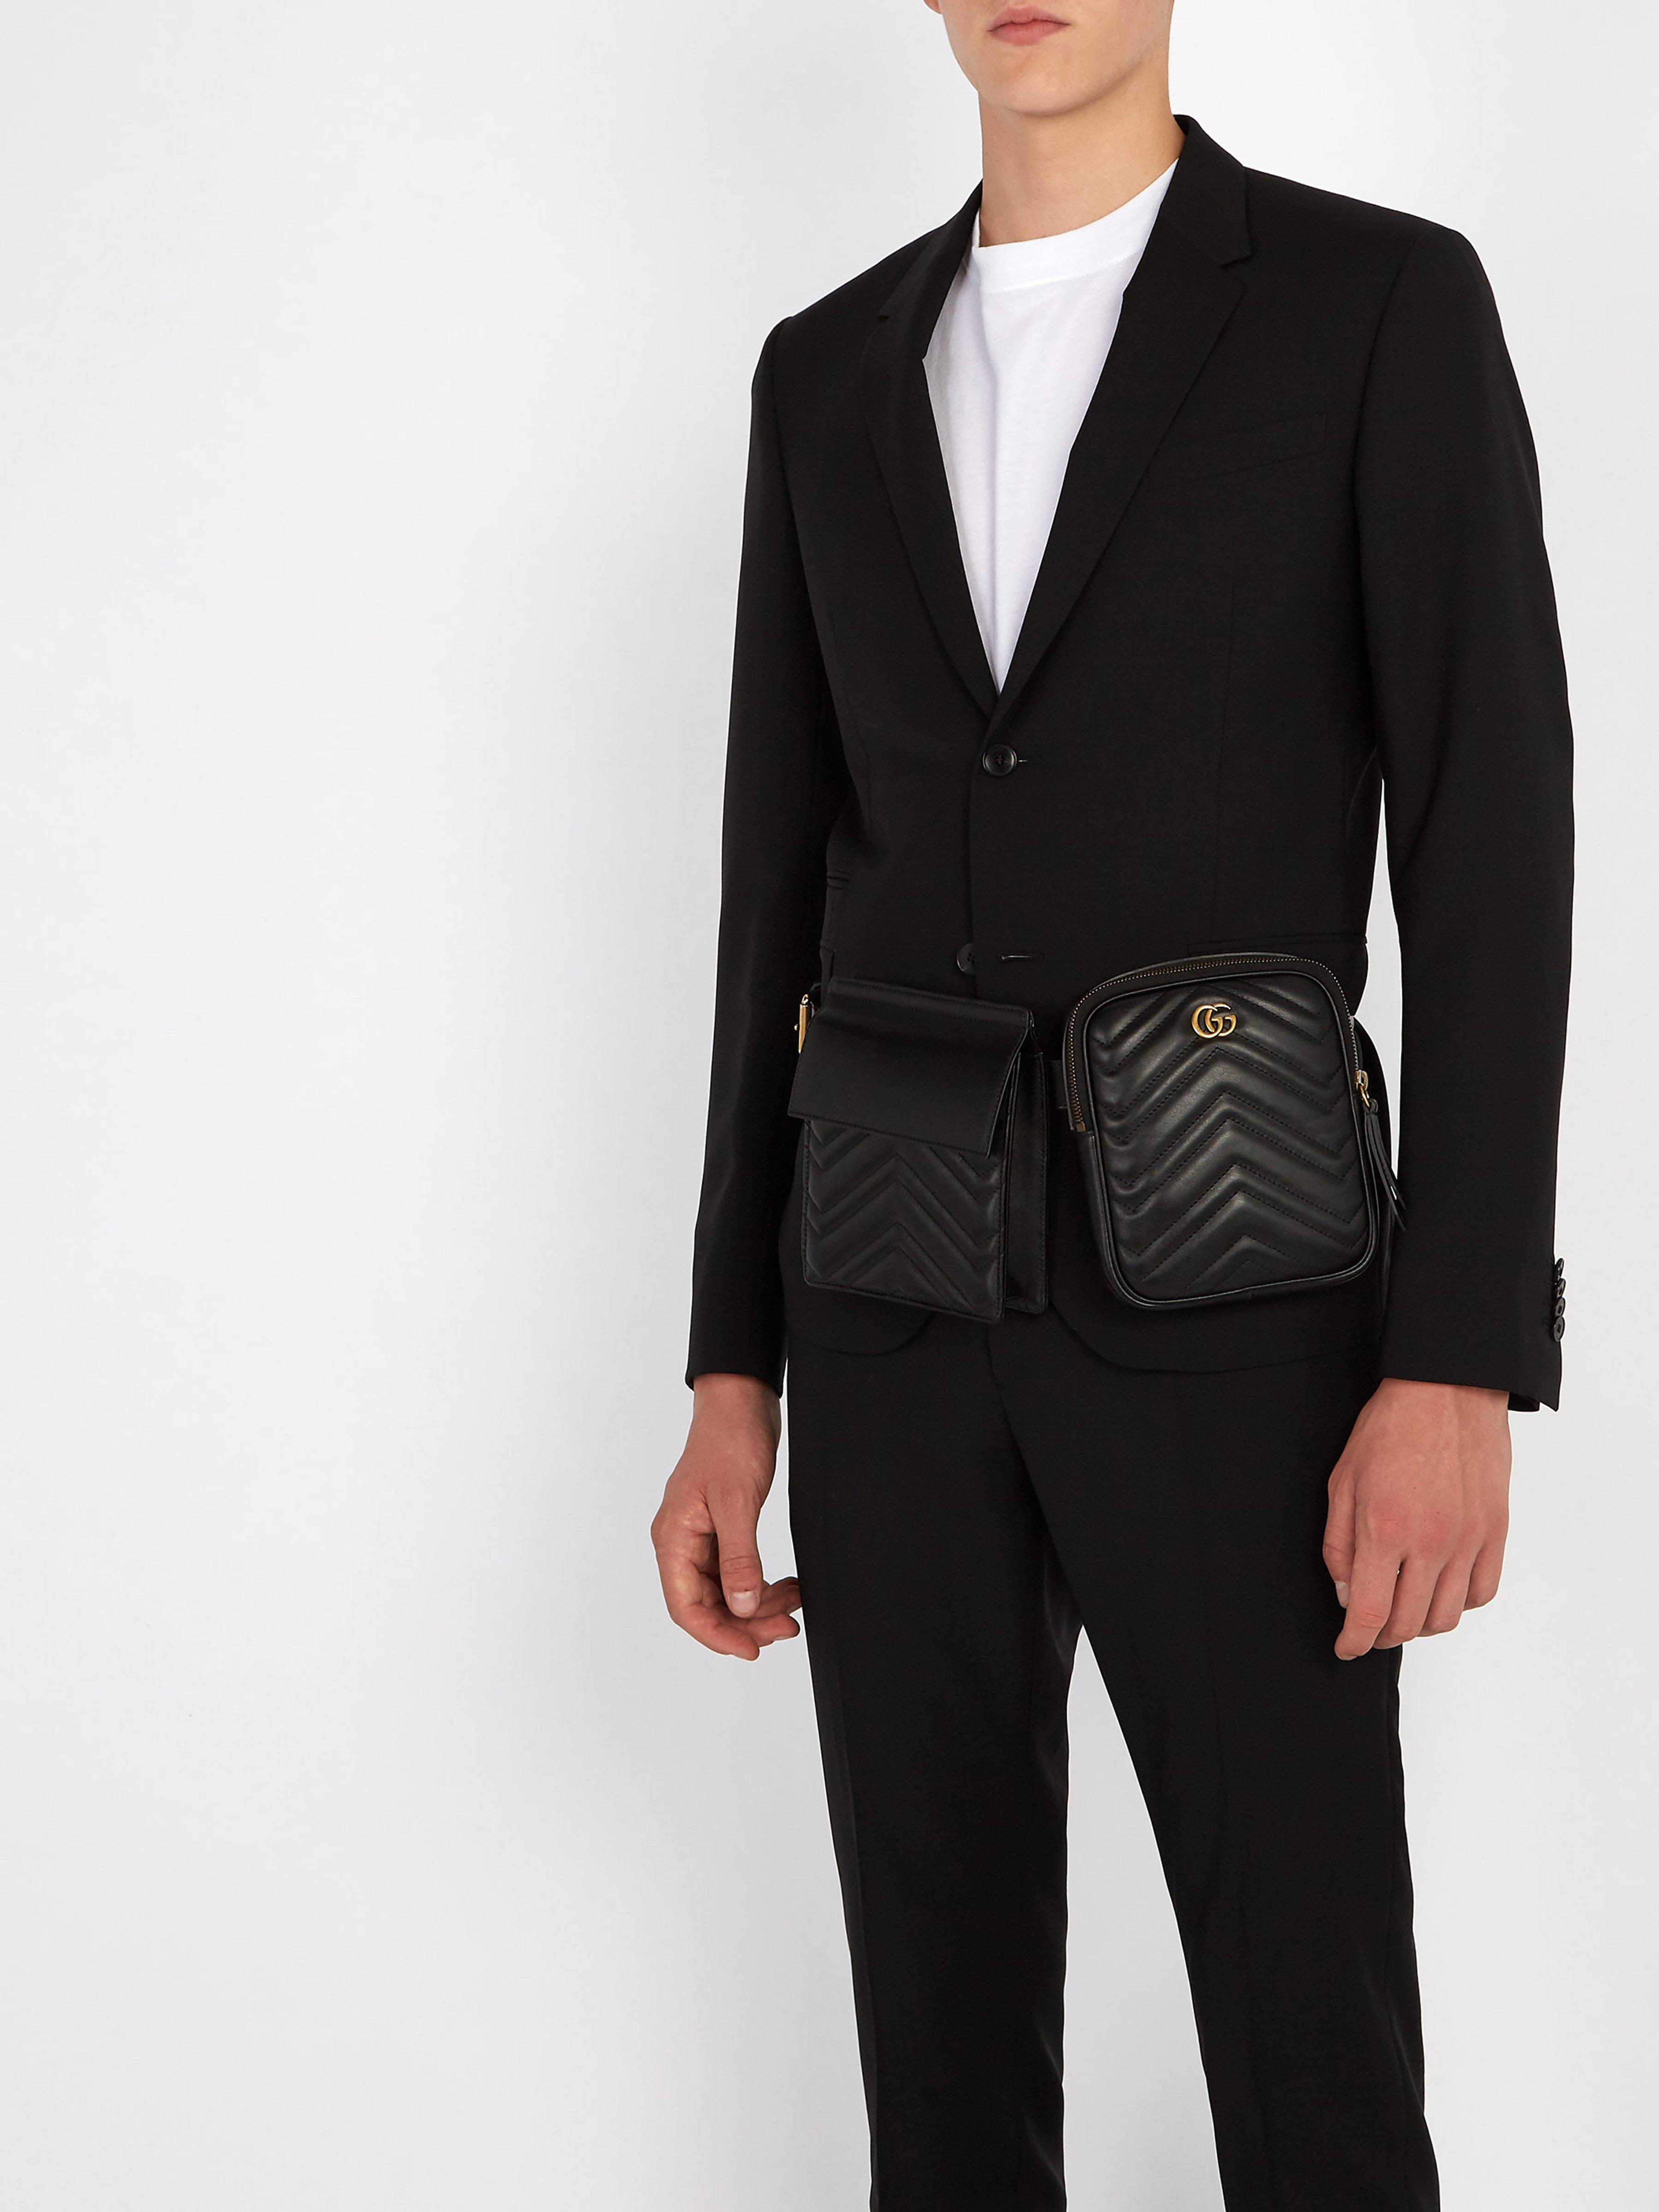 a11066d02762 Gucci Gg Marmont Leather Belt Bag in Black for Men - Lyst